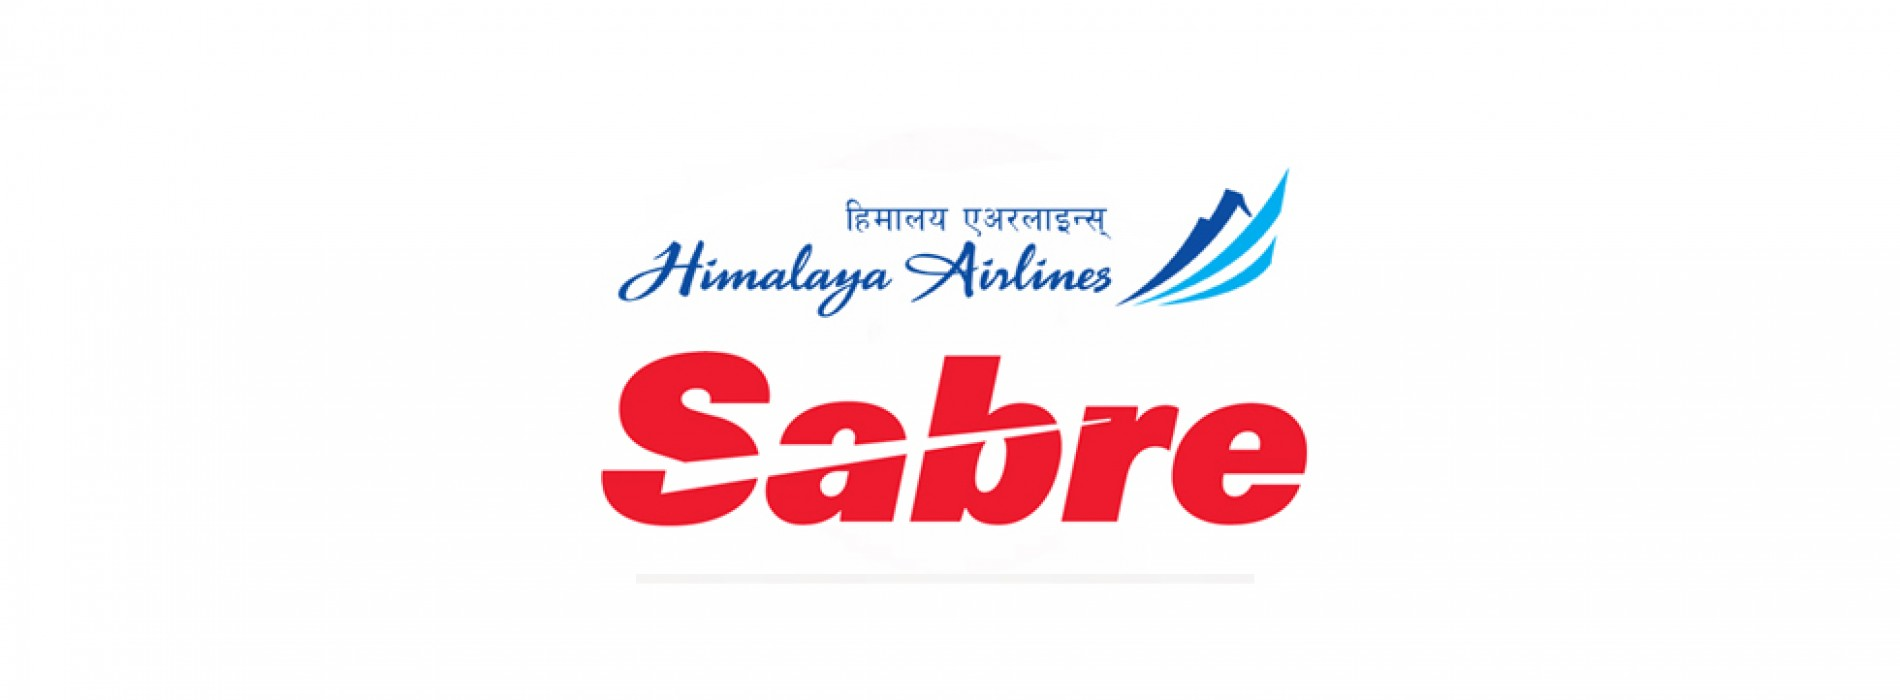 Sabre and Himalaya Airlines announce global distribution partnership further driving the airline's growth globally